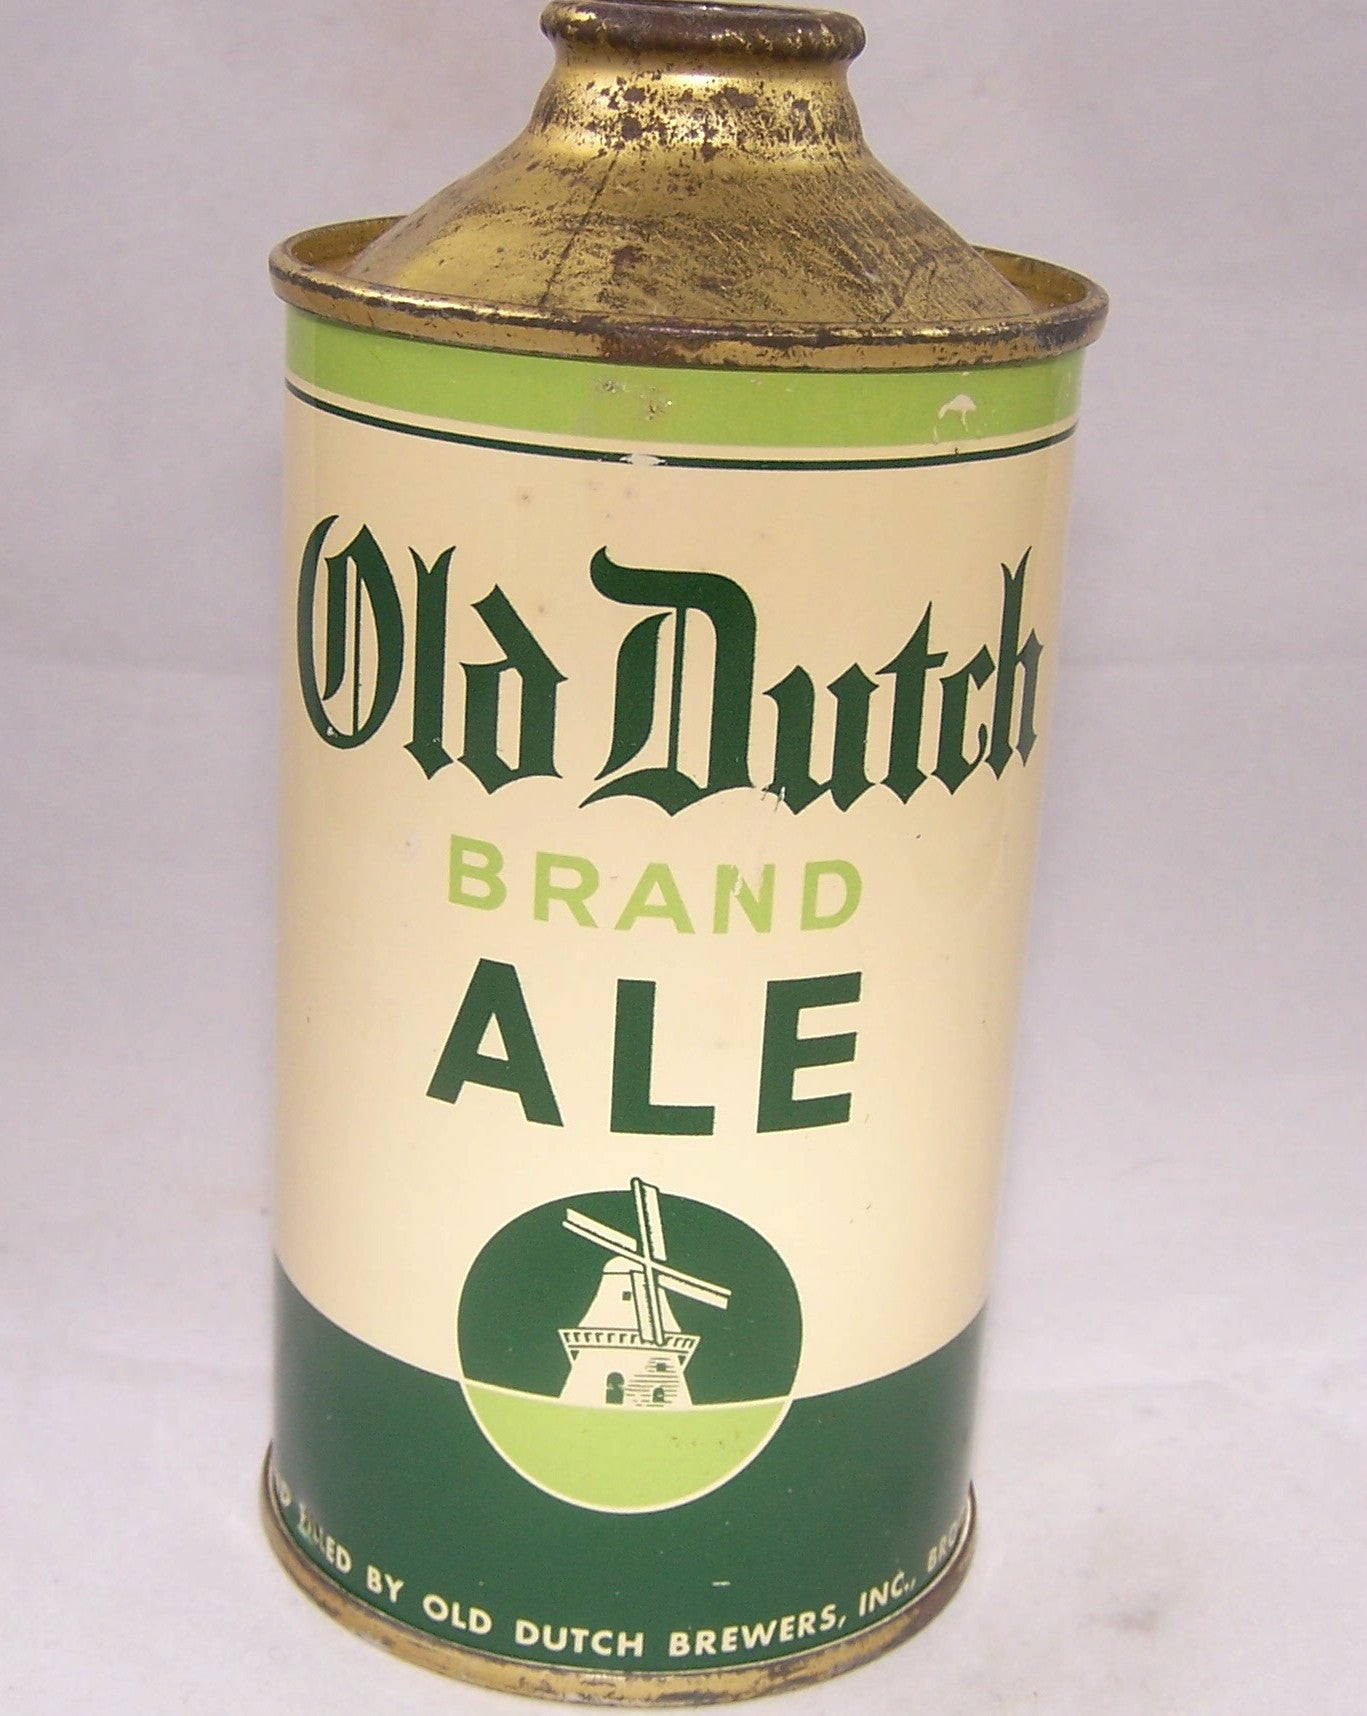 Old Dutch Brand Ale, USBC 176-02, Grade 1/1+ Sold on 12/03/16